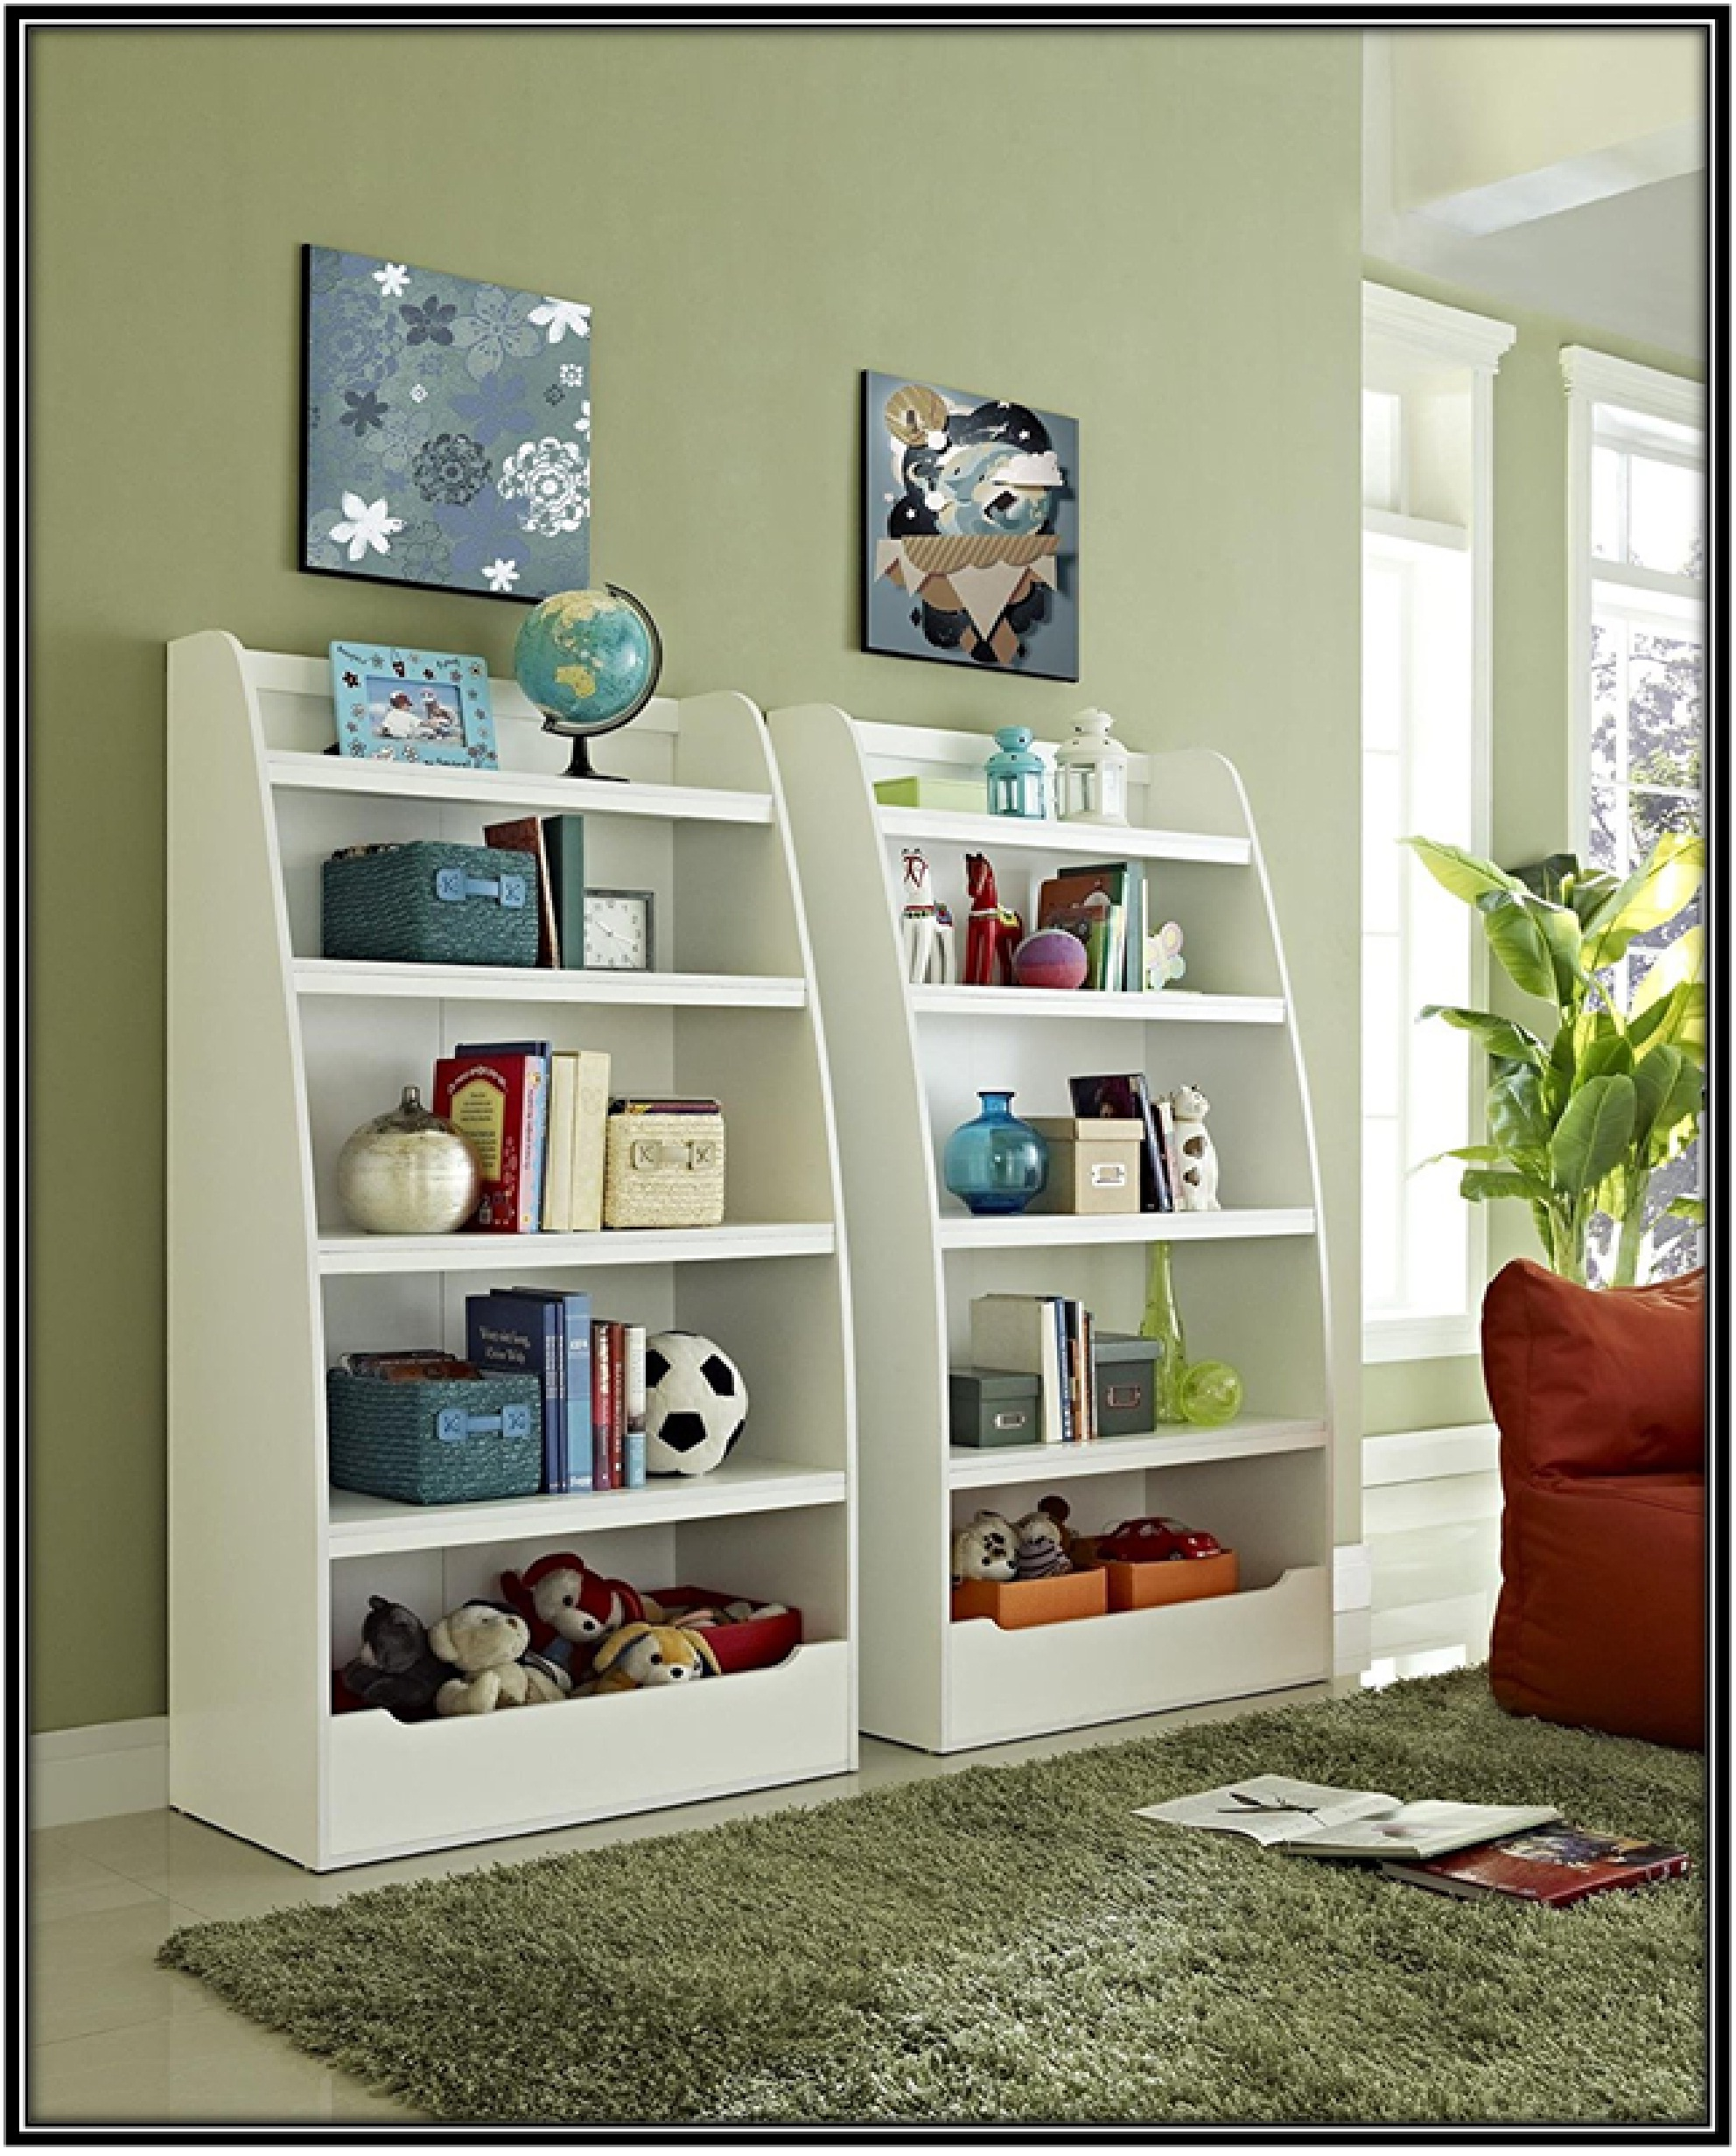 Organizing books in kid's room - home decor ideas